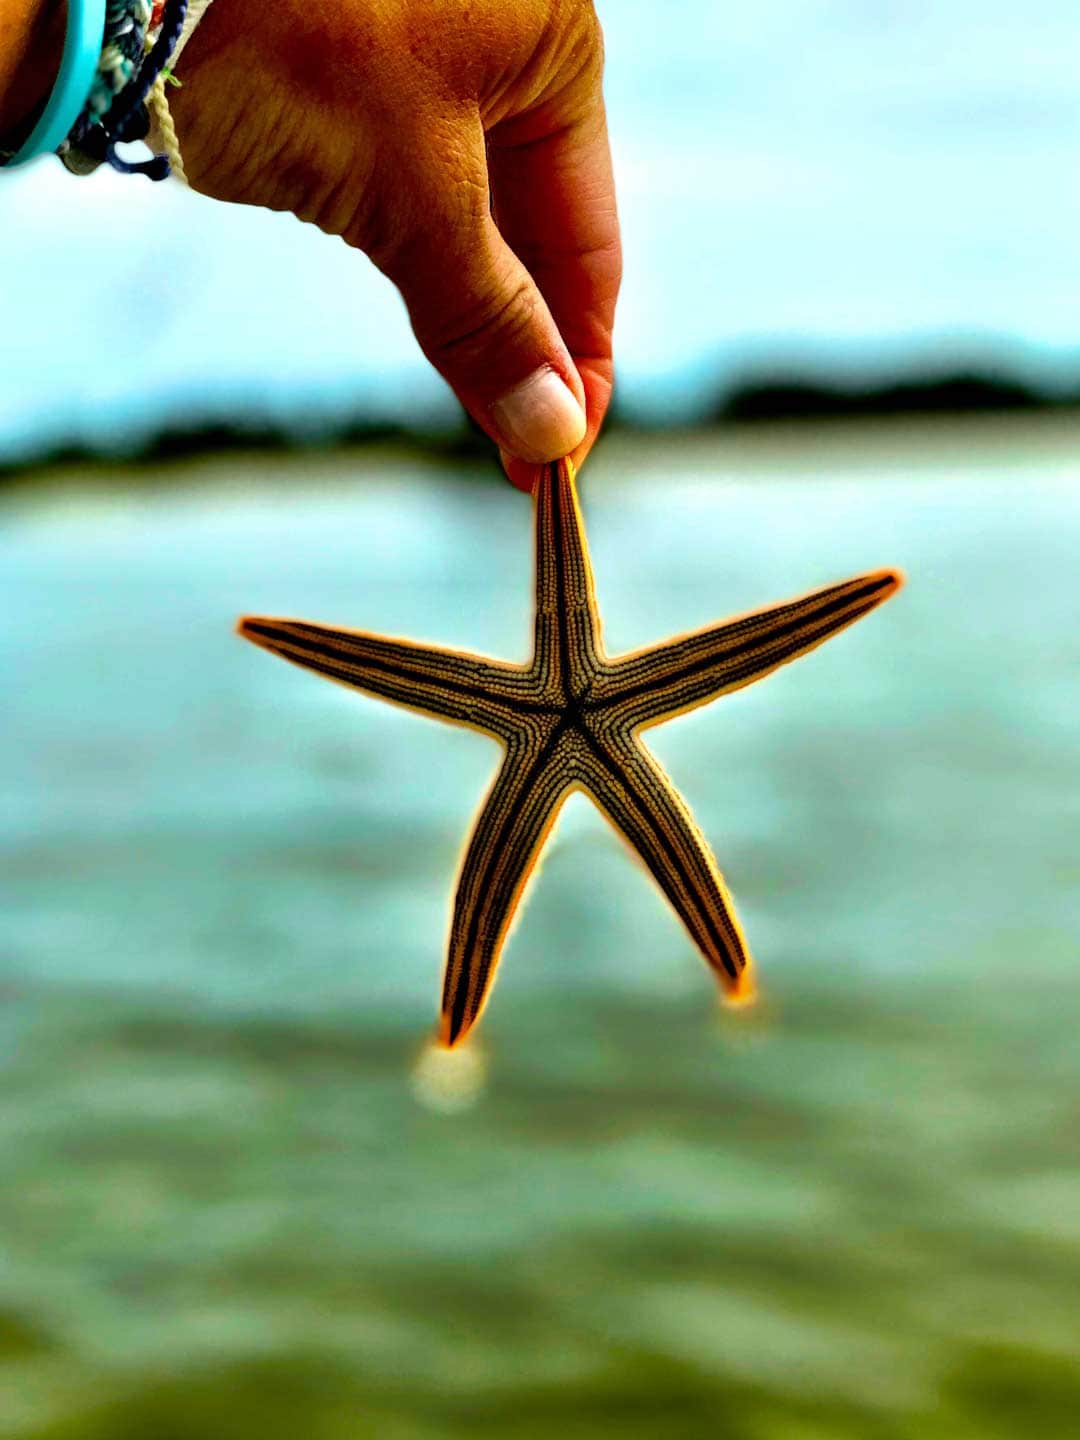 Image of woman's hand holding a starfish